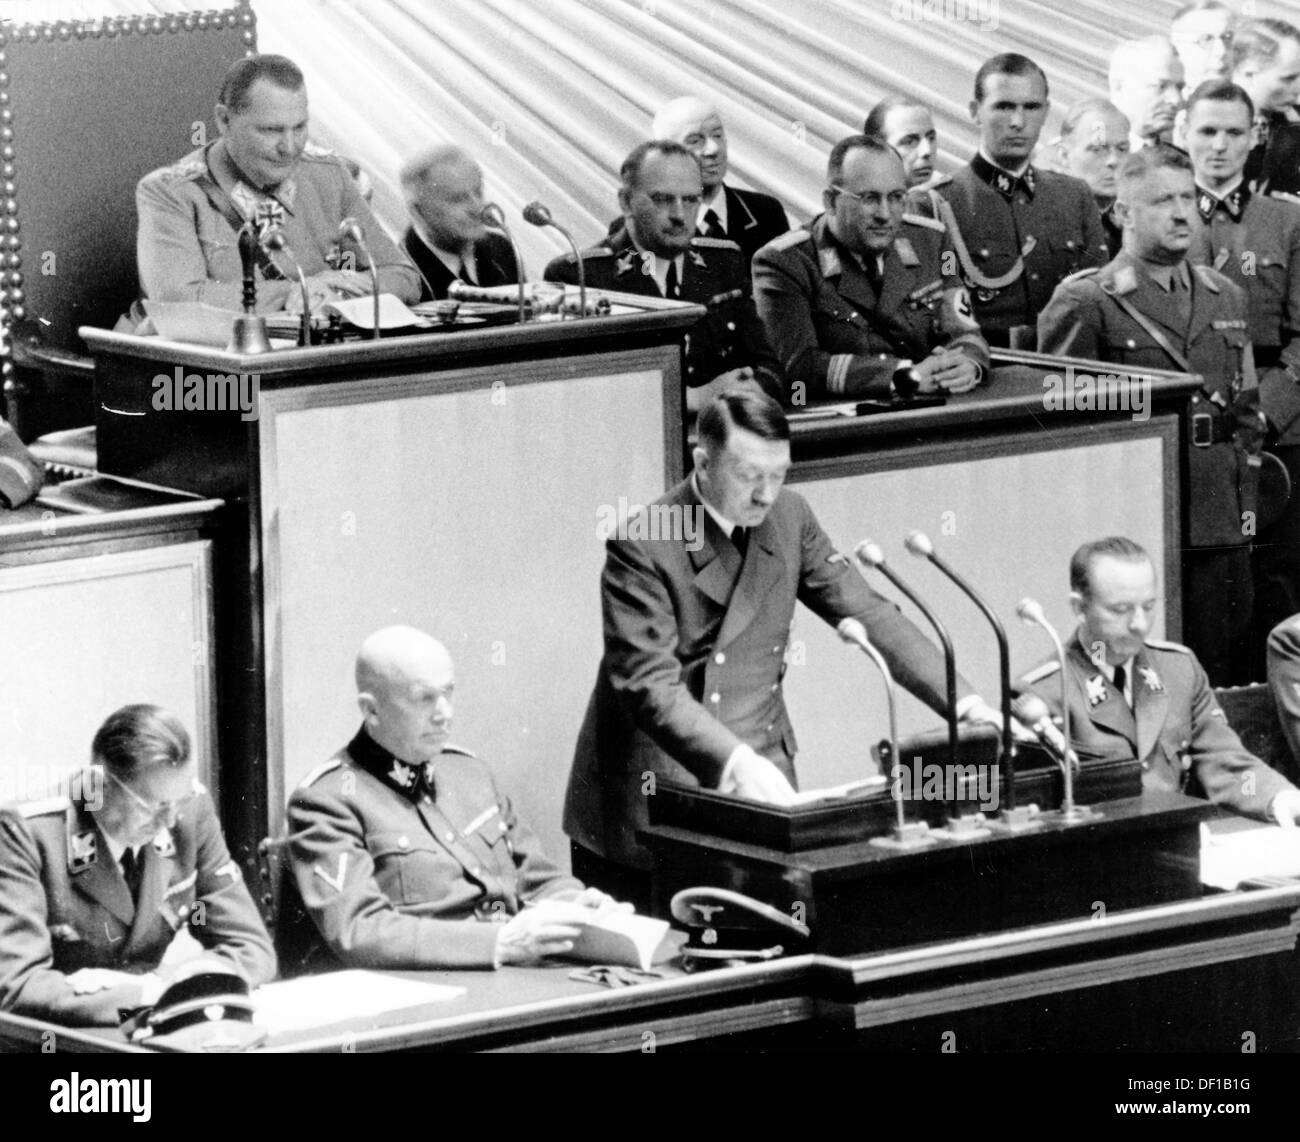 The image from the Nazi Propaganda! shows Reich Chancellor Adolf Hitler delivering a speech to the Reichstag in the Kroll Opera House in Berlin, Germany, 26 April 1942. During that session, a resolution of the Greater German Reichstag was passed that legitimized the Führerbefehl (Führer's Order) as the final decision making body without reference to formal principles of law. Photo: Berliner Verlag/Archiv - Stock Image